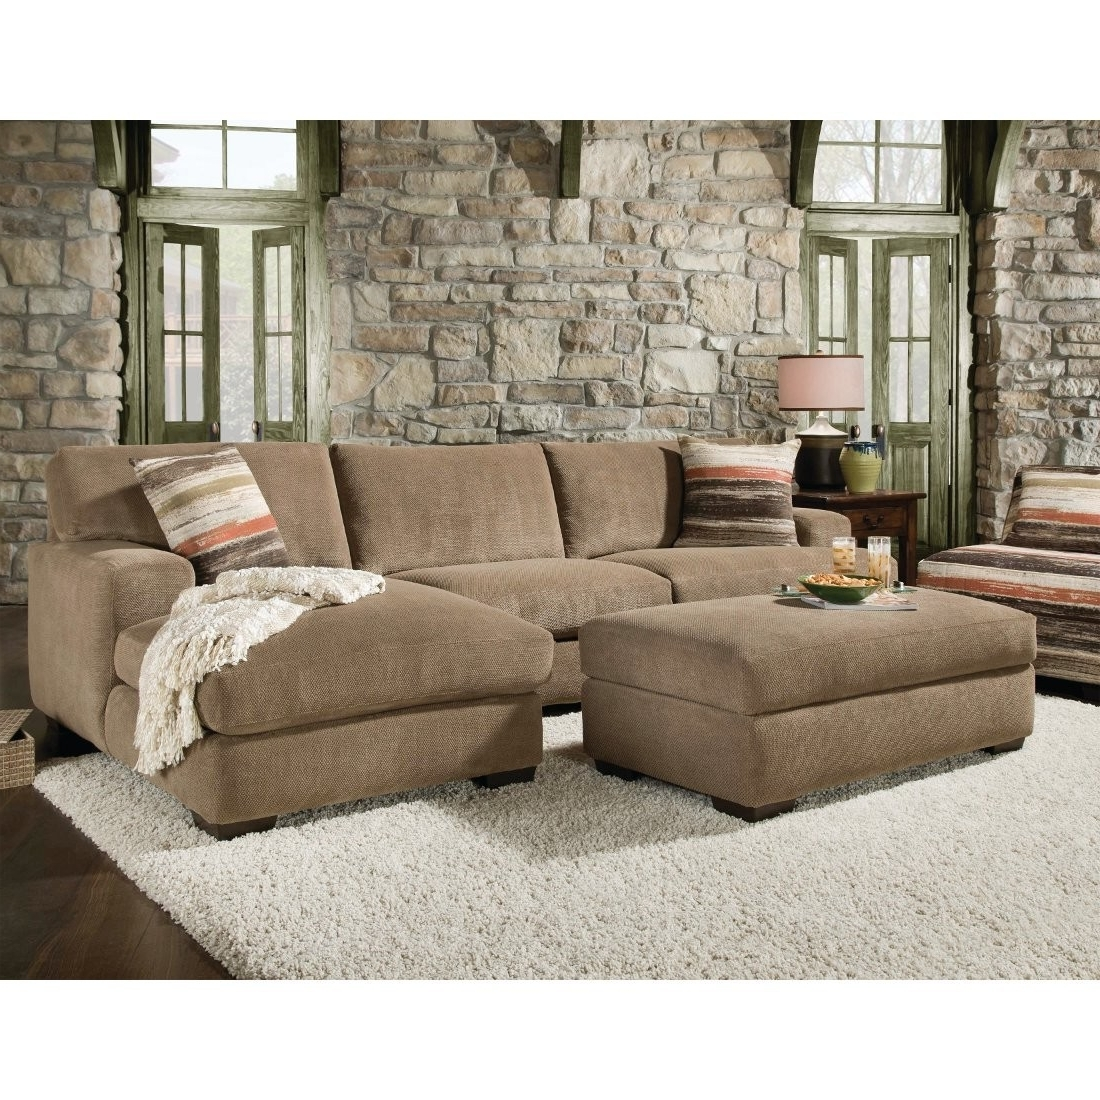 Trendy 2 Piece Sectional Sofas With Chaise With 2 Piece Sectional Sofa With Chaise Design (View 10 of 15)